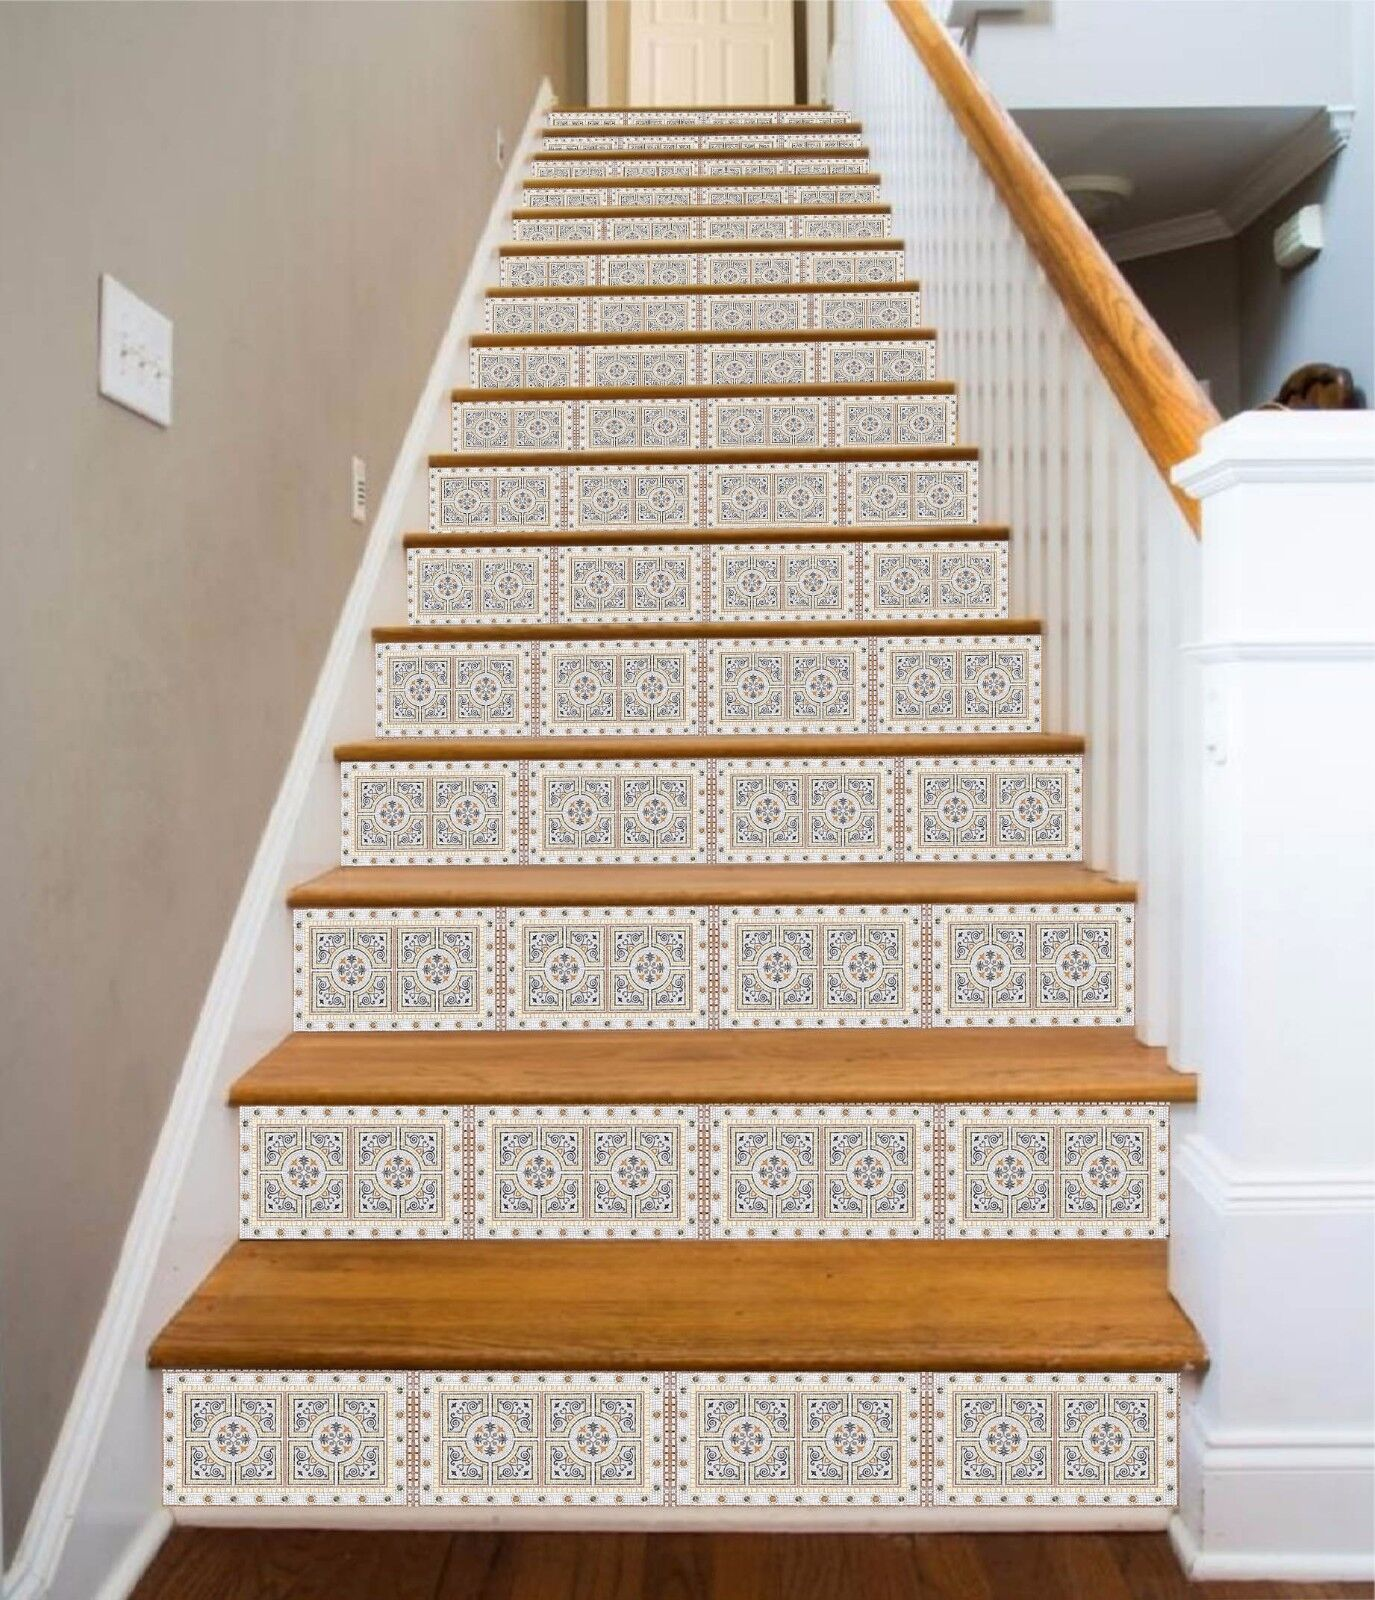 3D Figure 634 Stair Riser Decoration Photo Mural Vinyl Decal Wallpaper UK Lemon